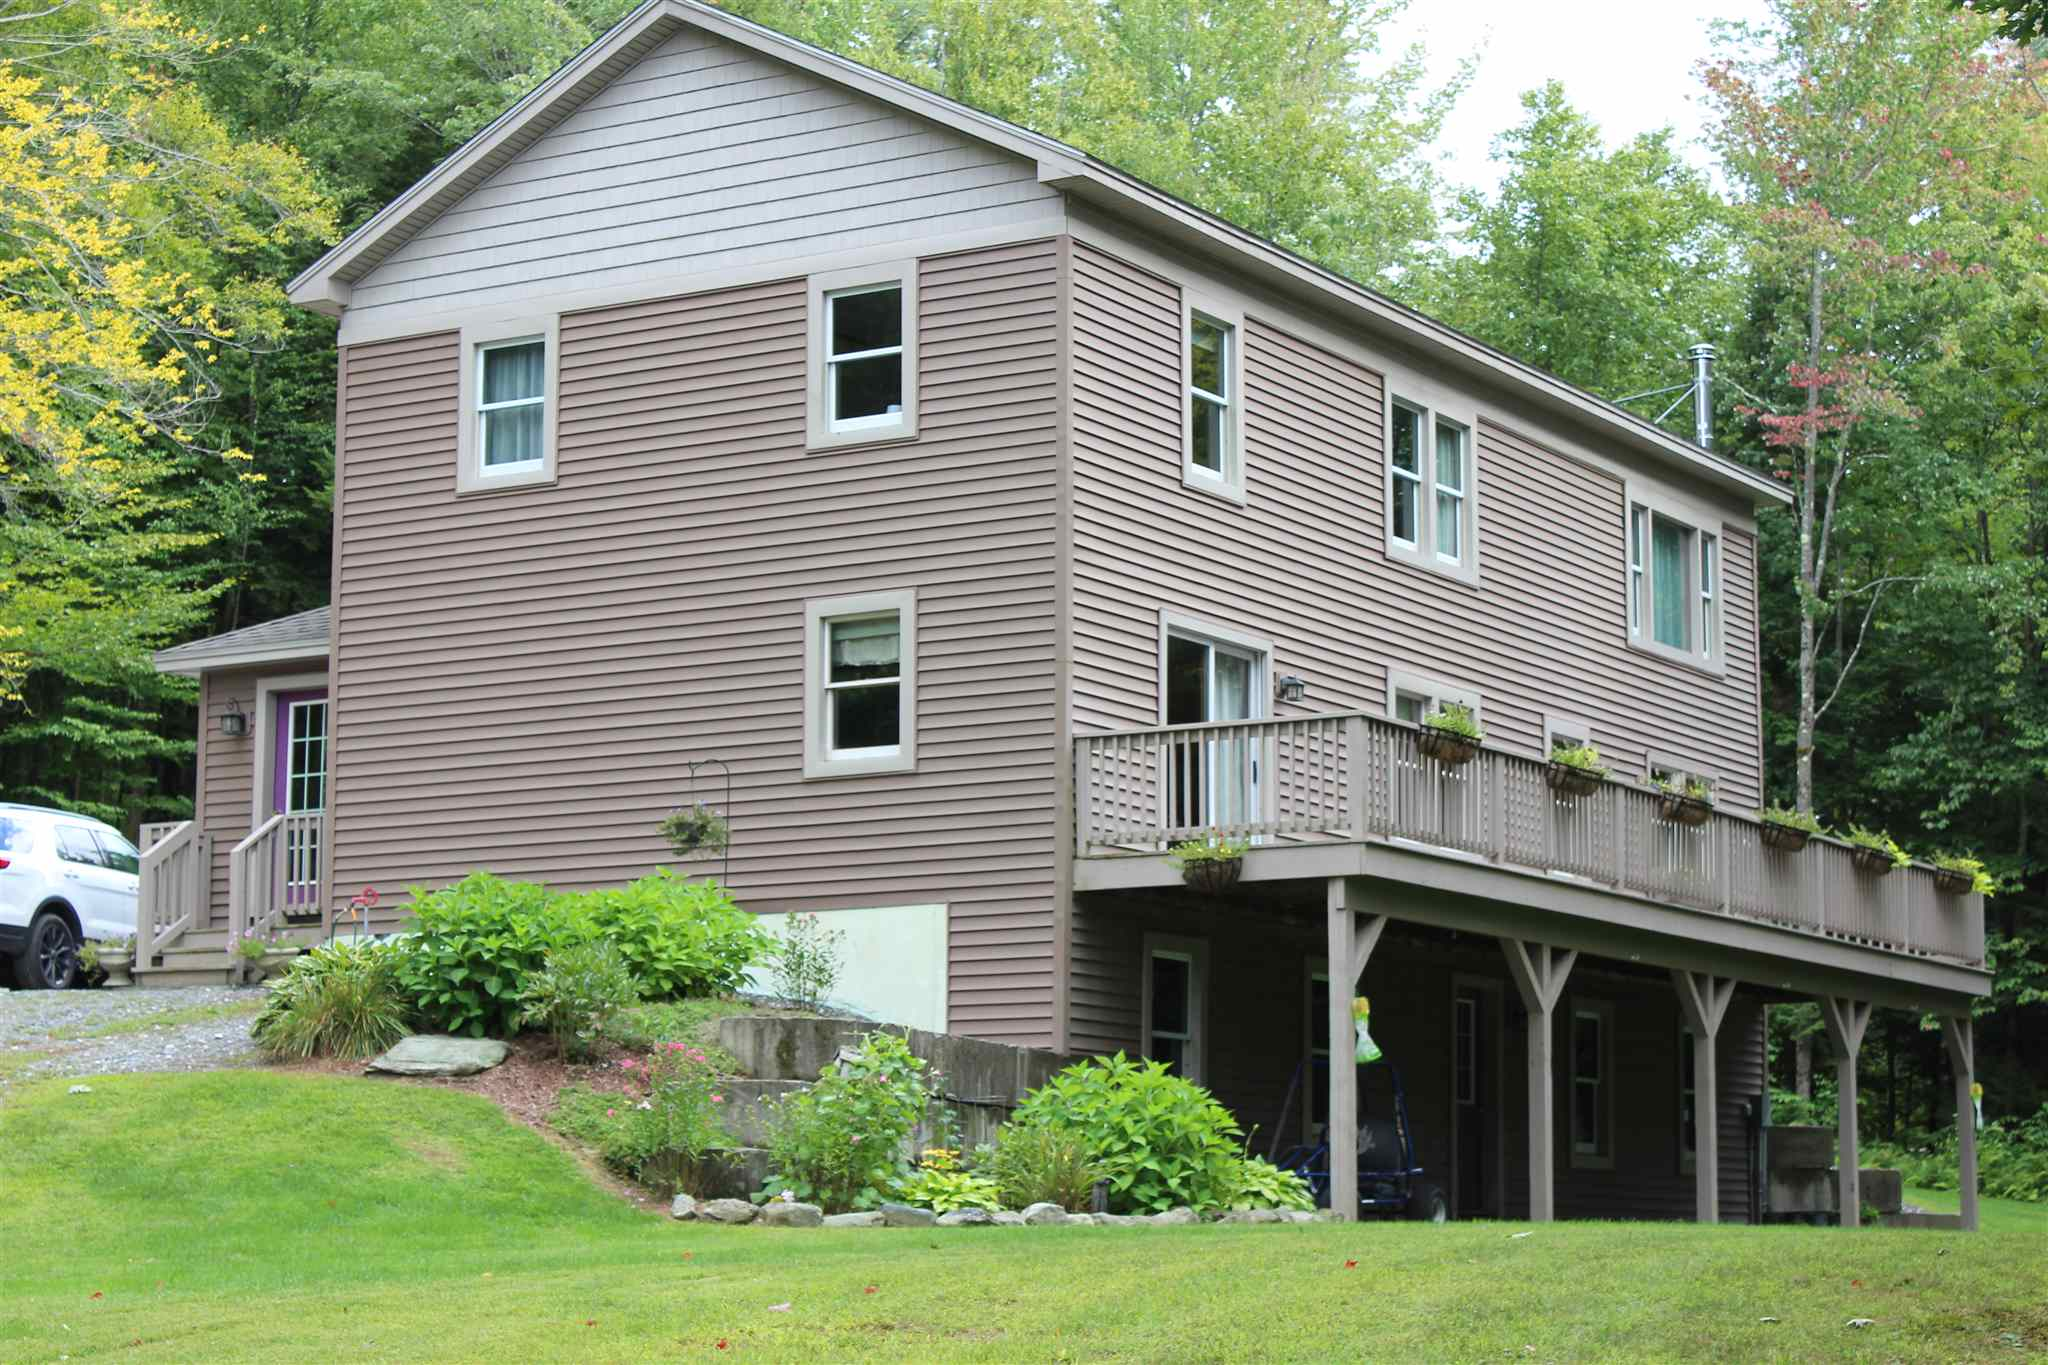 MLS 4824207: 567 Tandy Brook Road, Cornish NH